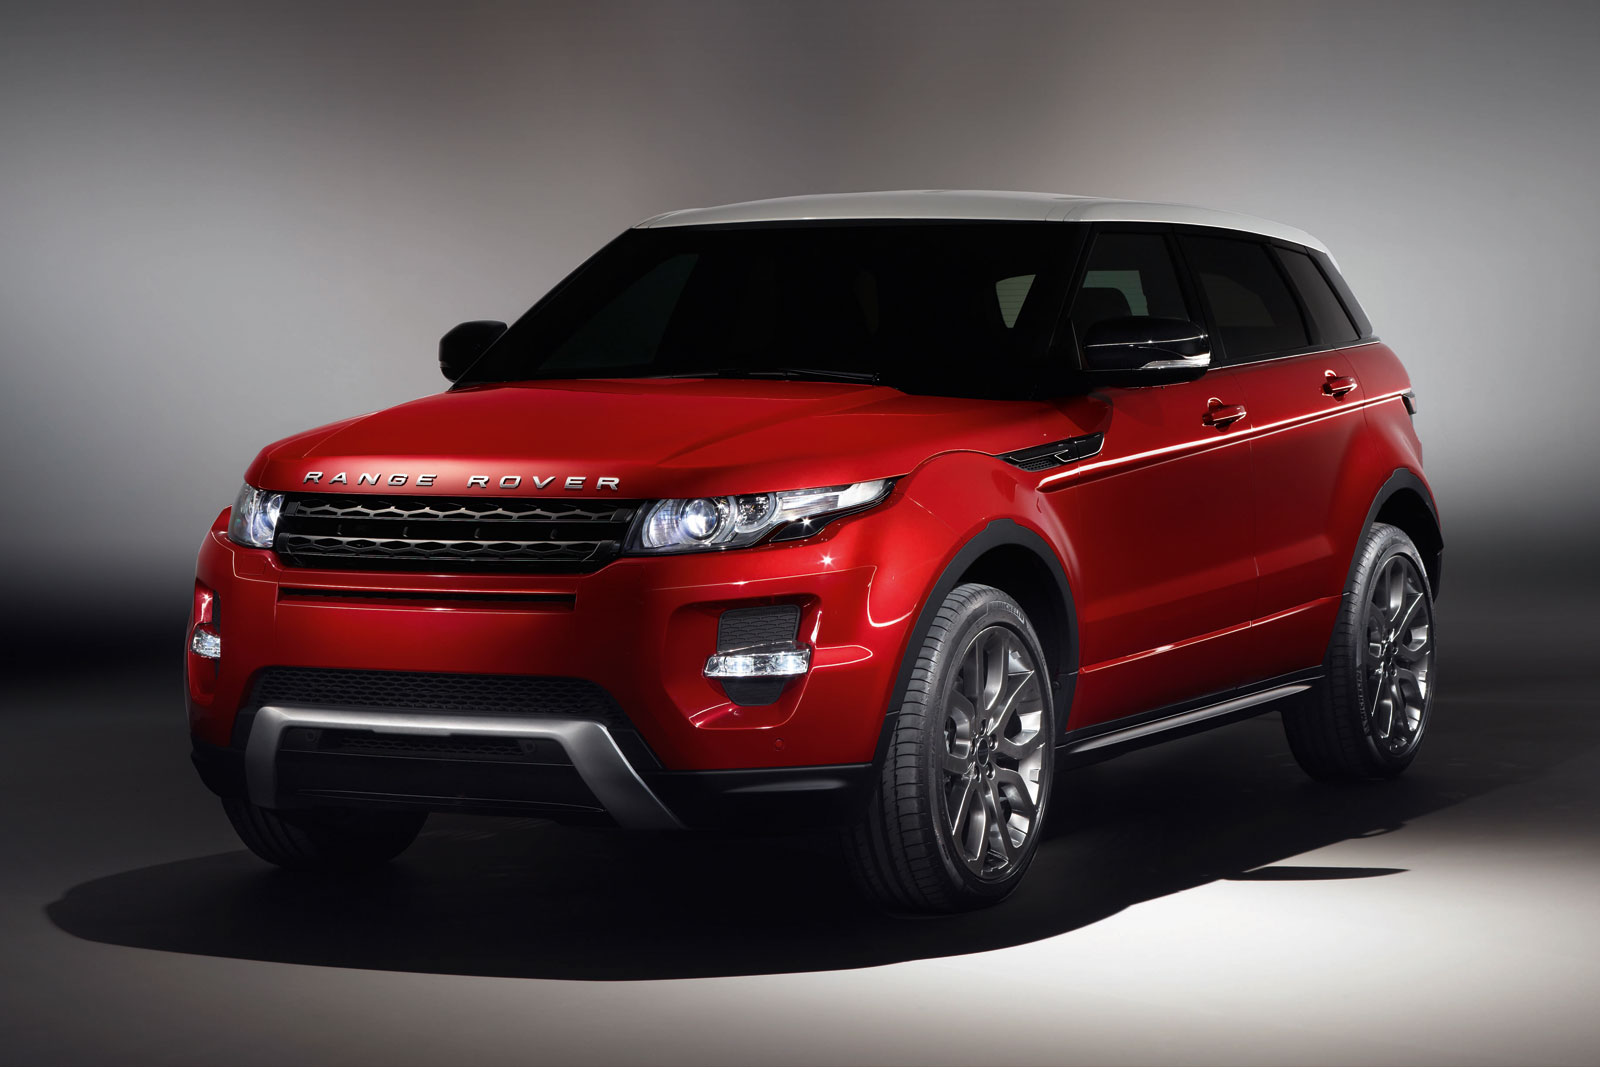 2012 Land Rover Range Rover Evoque 5-Door Official Photos